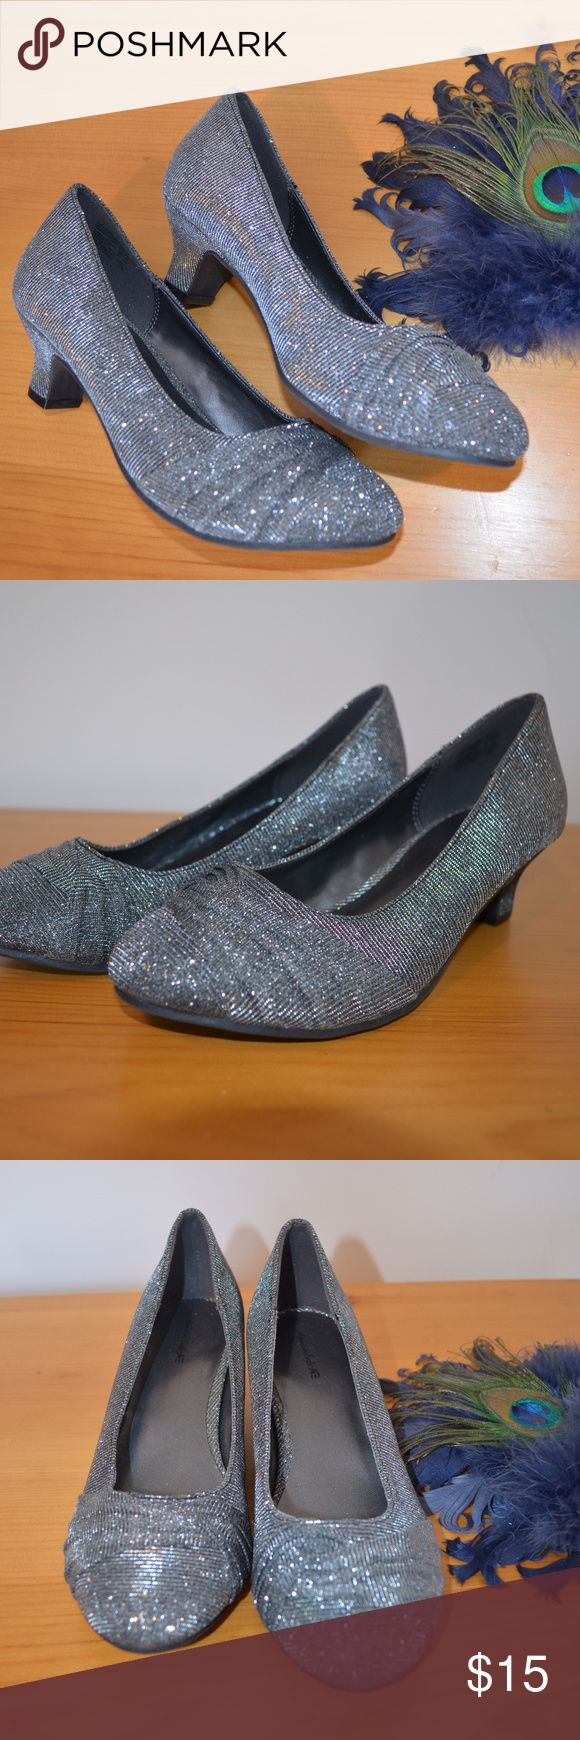 American Eagle by Payless Silver Shoes Sz 5 Beautiful silver, sparkle shoes with tie front detail.  Size 5 with 2 inch heel. Like new condition!  *The brand is American Eagle by Payless, not American Eagle Outfitters. American Eagle By Payless Shoes Heels